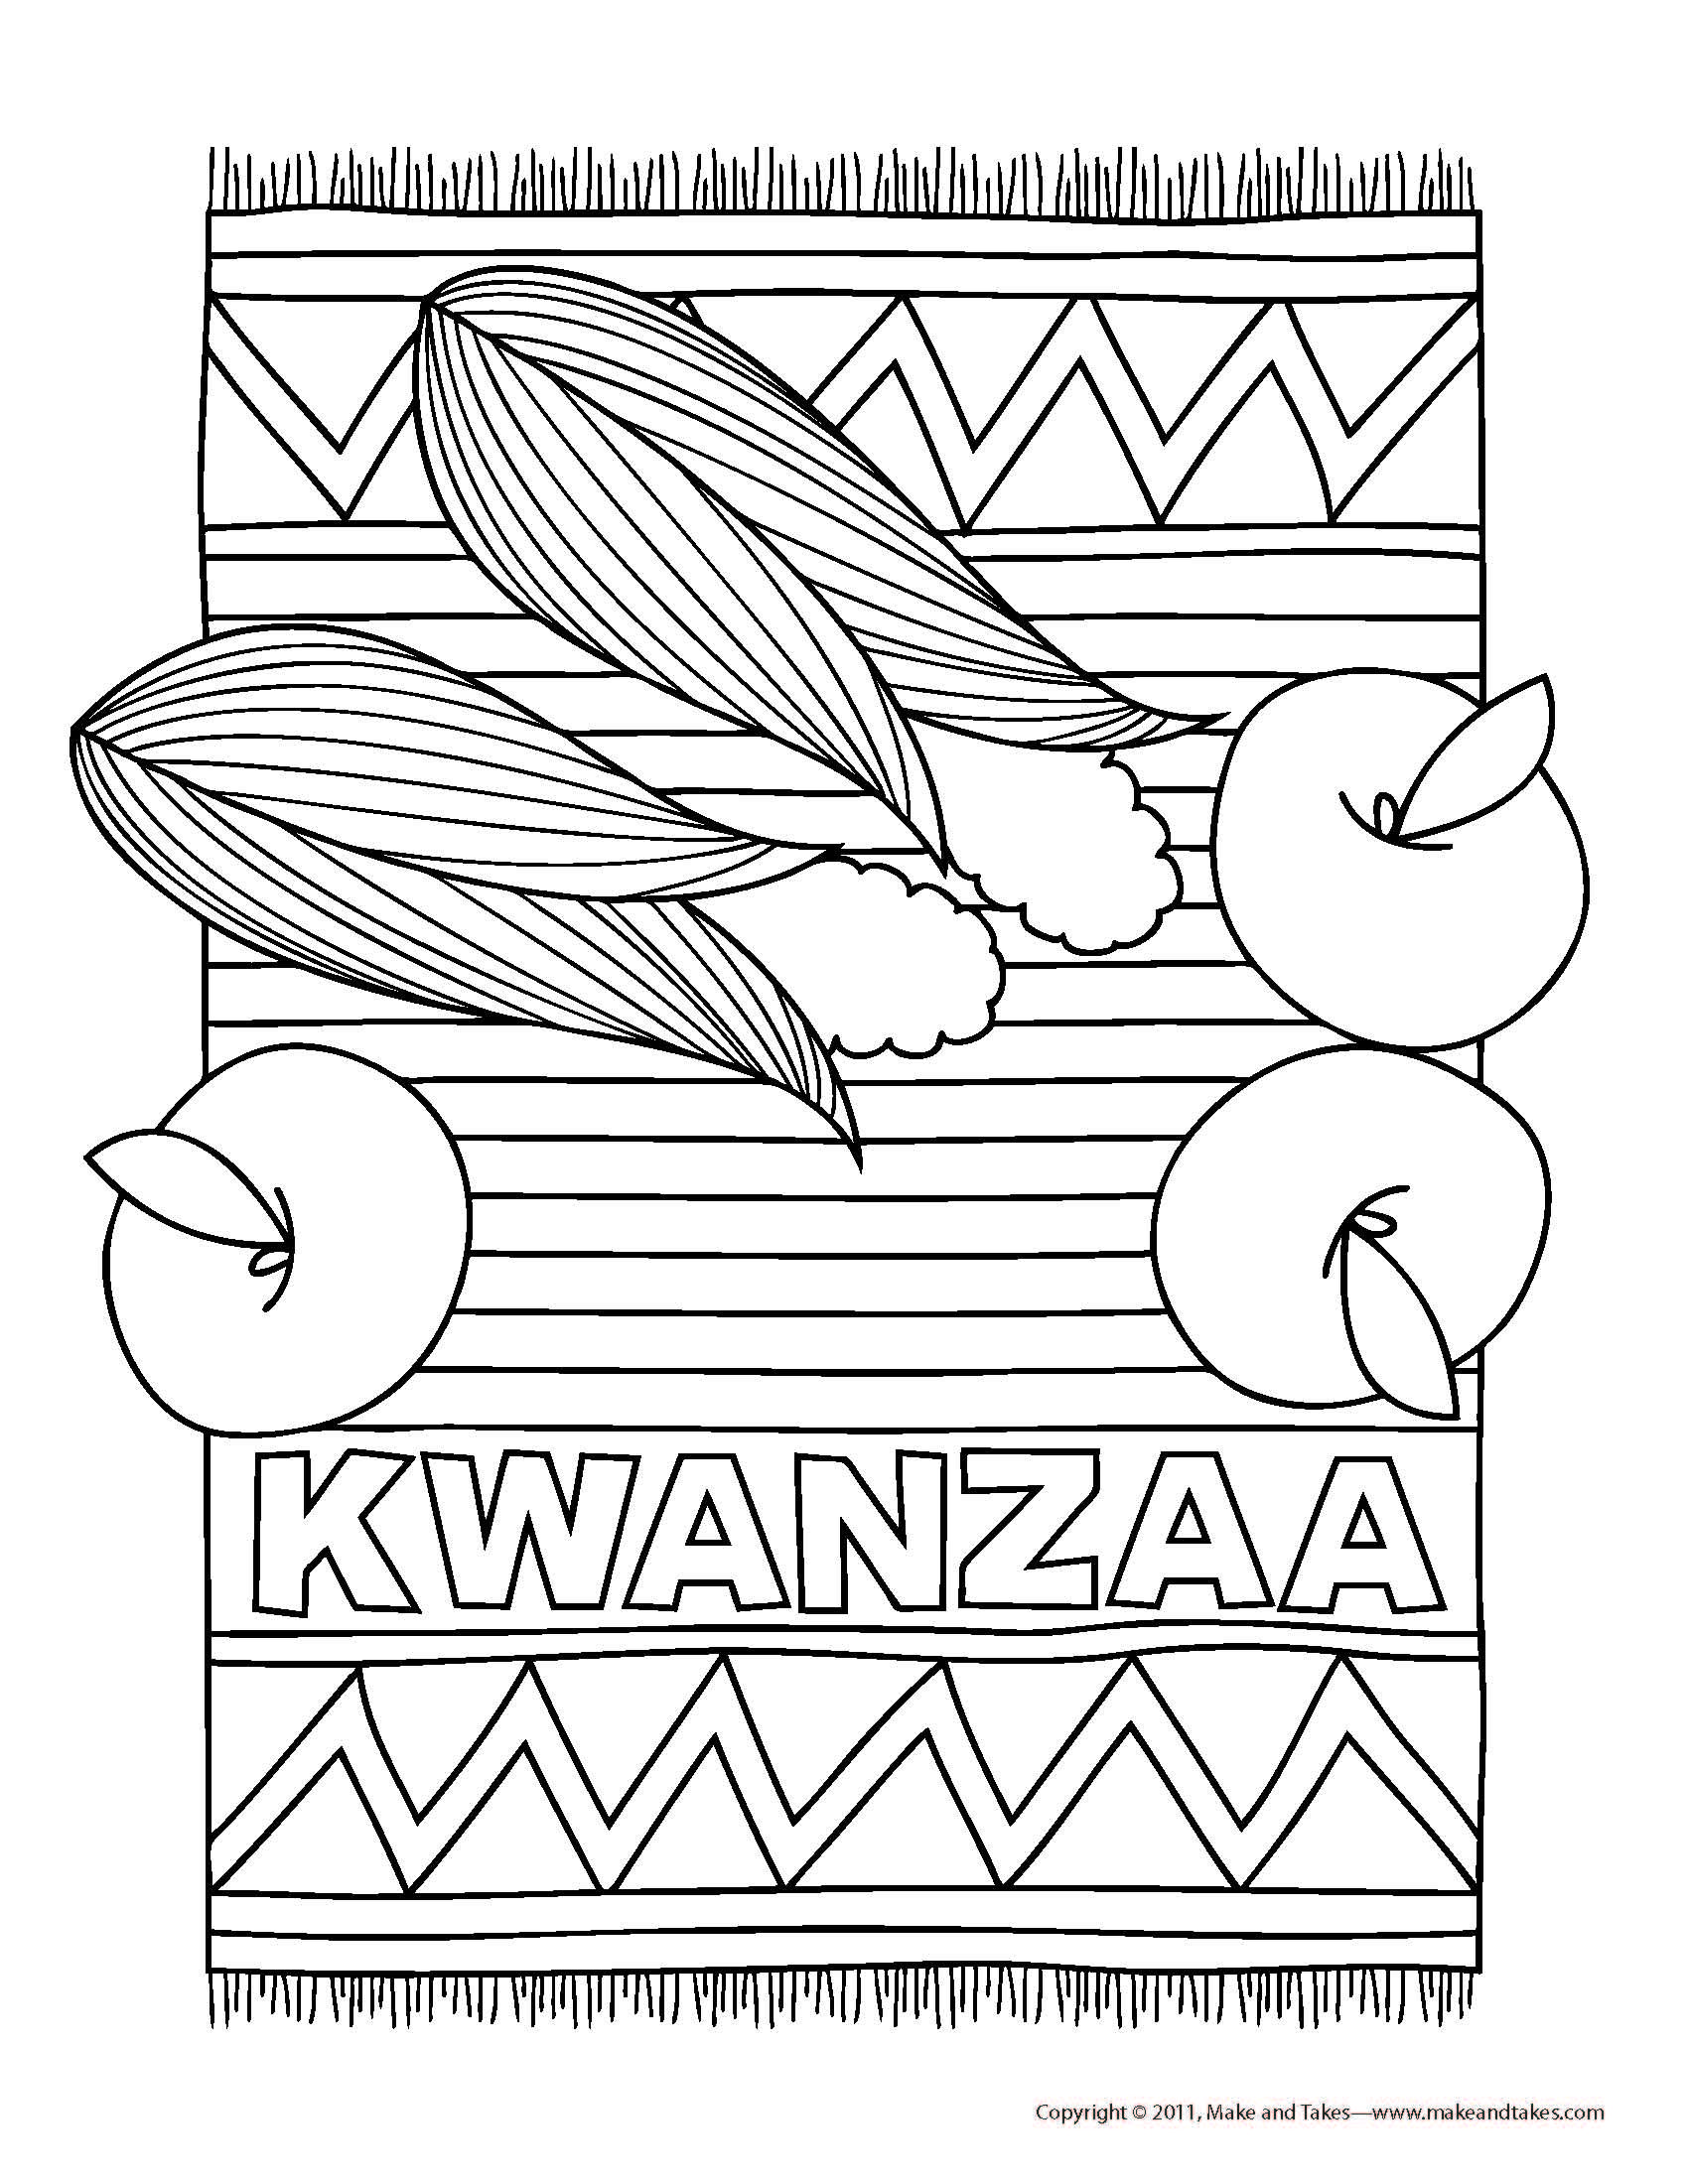 Kwanzaa colouring page Find more